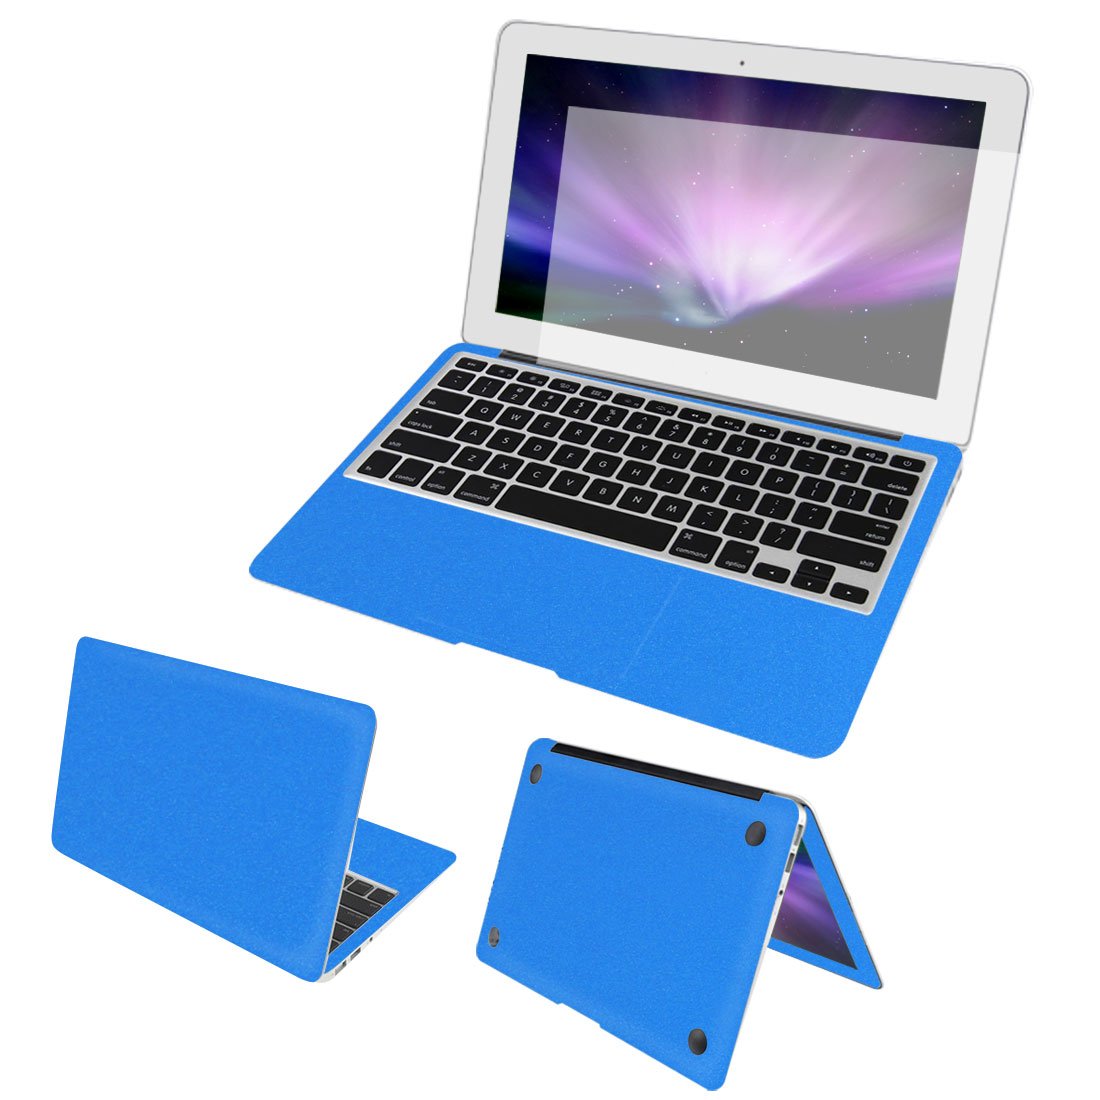 Blue Full Body Wrap Protector Decal Skin Cover Screen Film for Macbook Air 13""